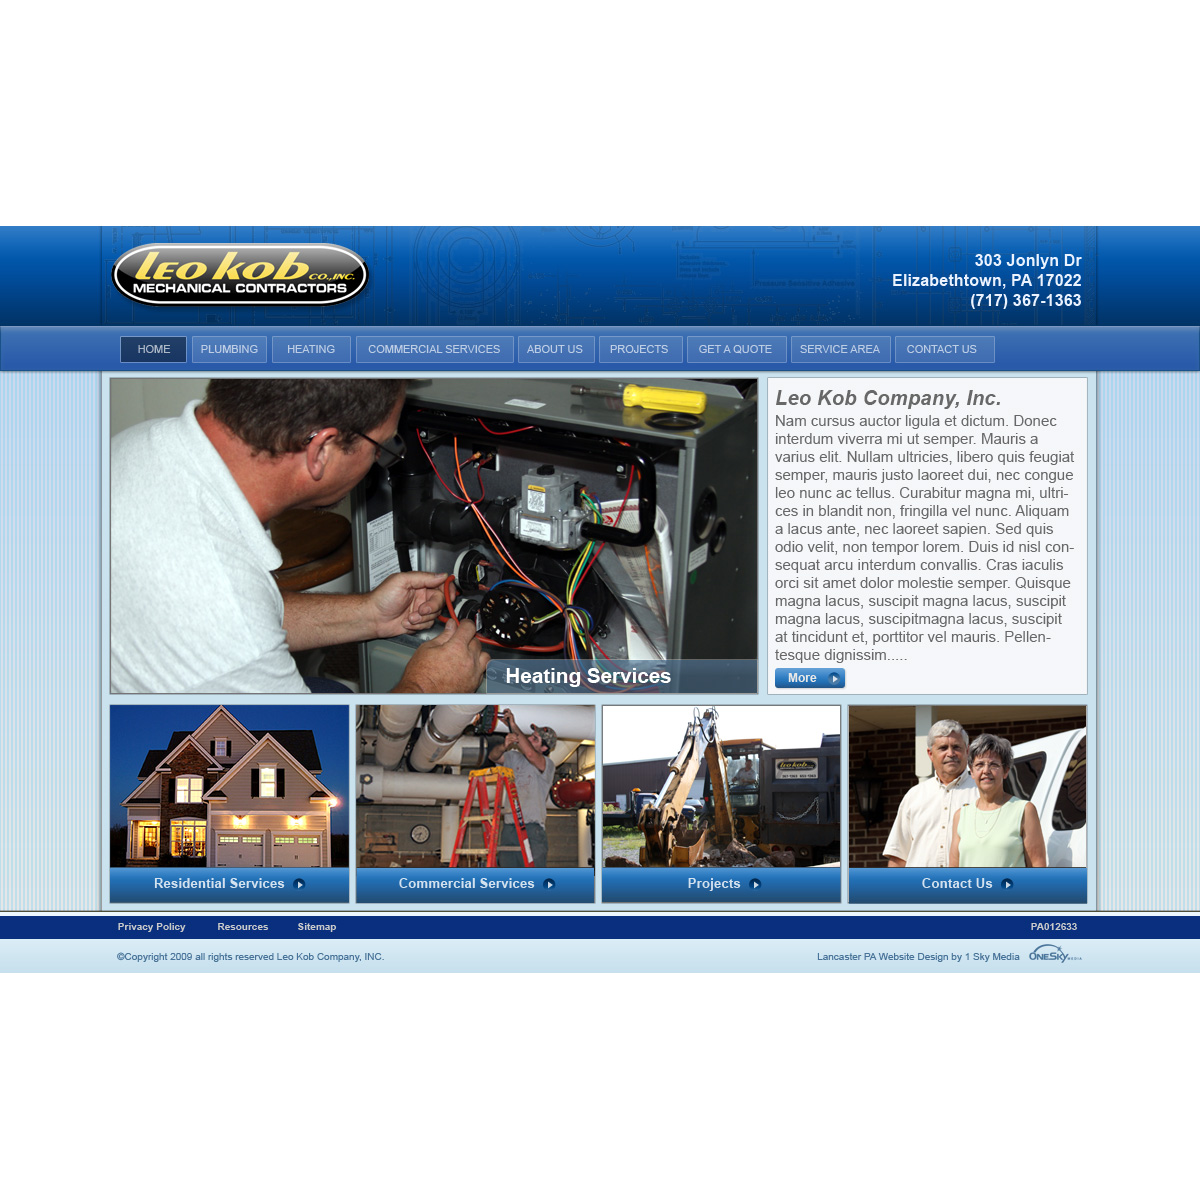 Leo Kob Mechanical Contractors - mechanical contractors website design